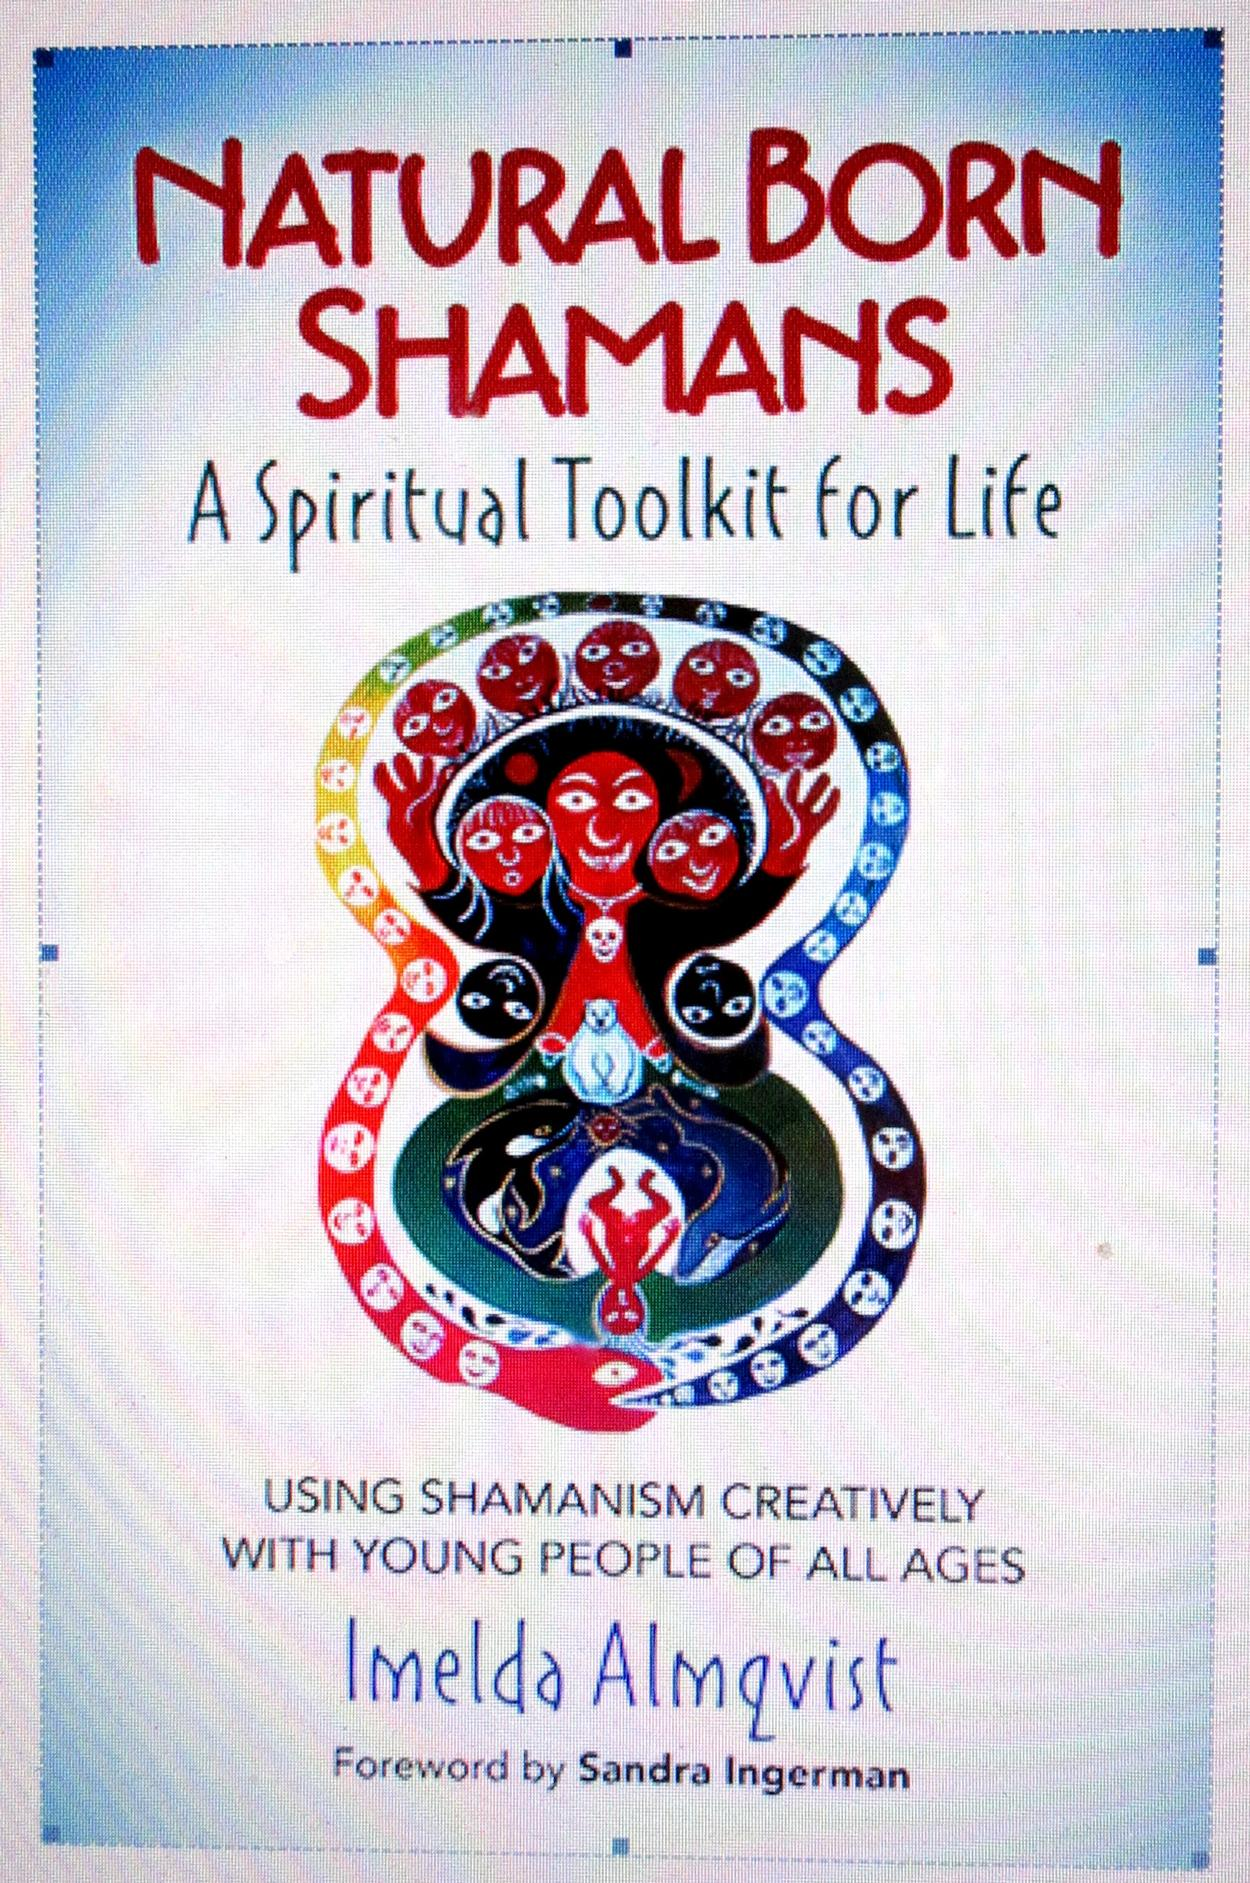 Courses in shamanism and sacred art offered by shamanic teacher painter and author Imelda Almqvist